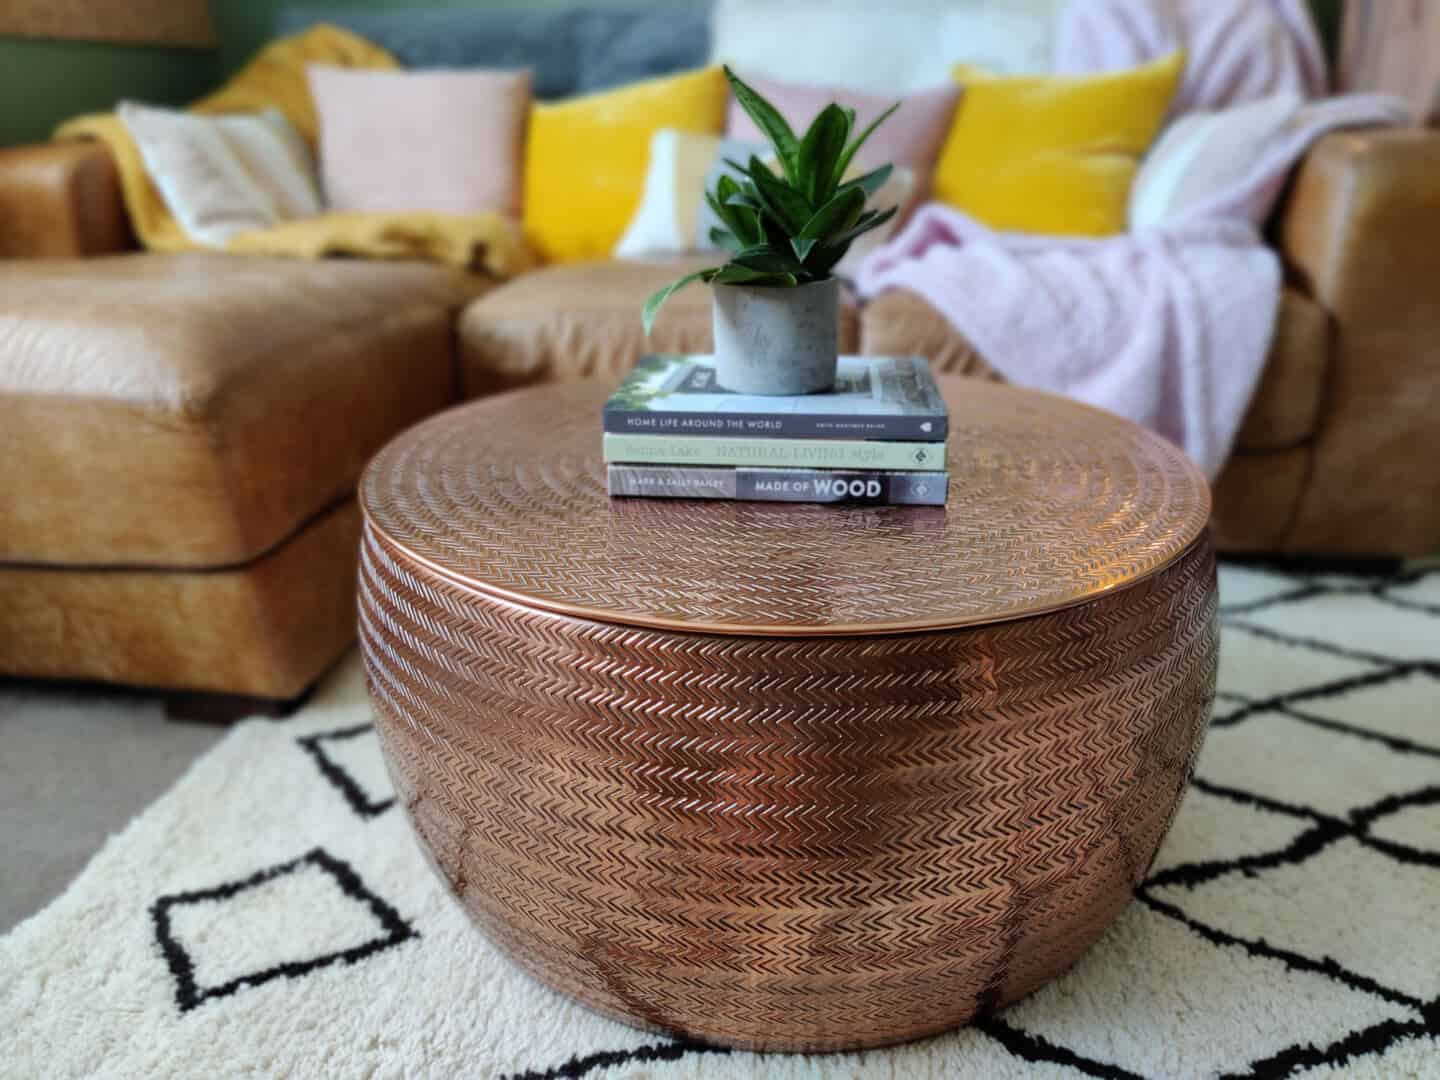 Autumn home updates with Habitat. A living room featuring a hand-etched copper coffee table on a berber rug.